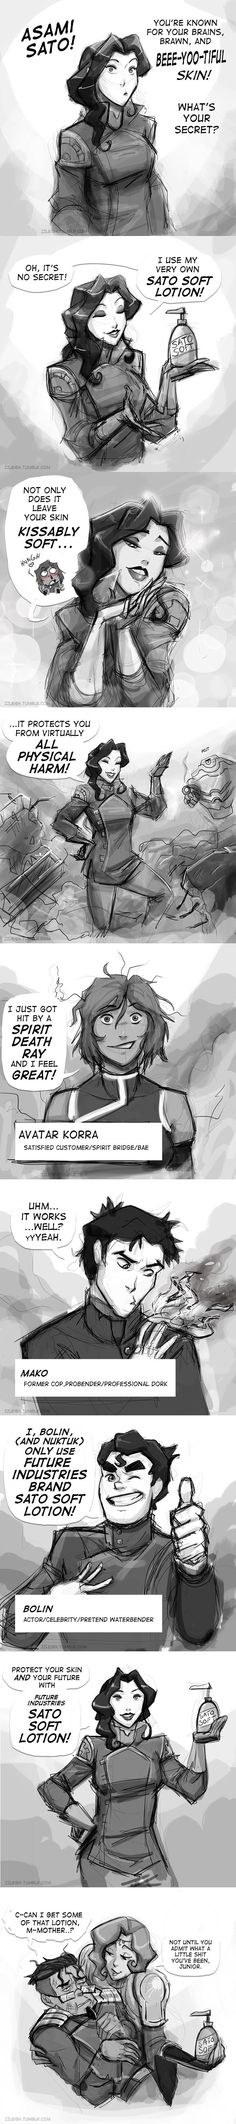 See more 'Avatar: The Last Airbender / The Legend of Korra' images on Know Your Meme! Korra Avatar, Team Avatar, Asami Sato, Avatar Funny, Earth Wind & Fire, Avatar Series, Iroh, Korrasami, Movies Playing